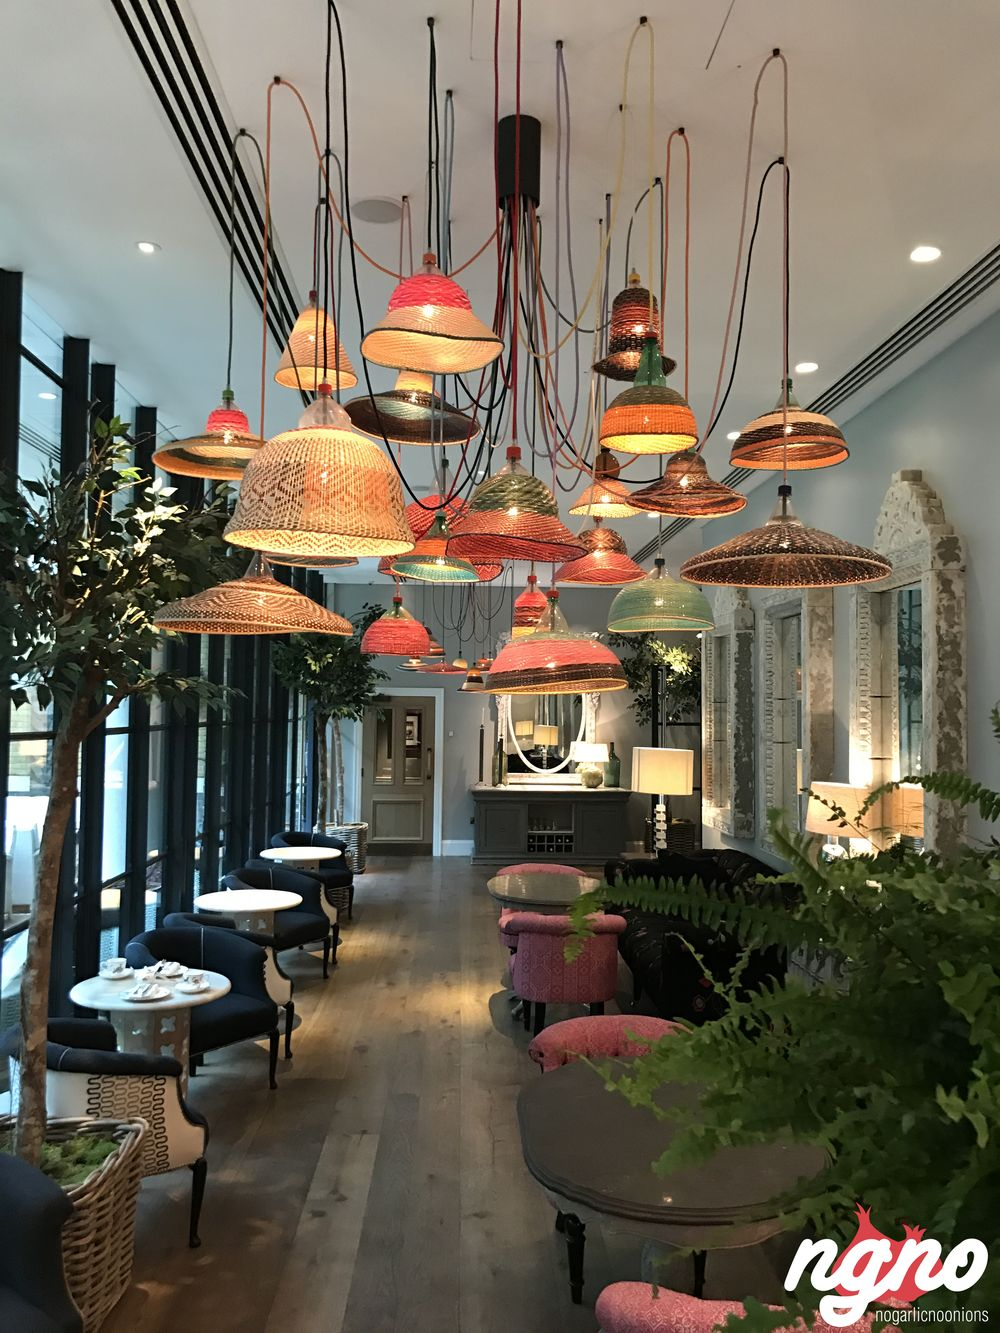 ham-yard-hotel-recommended-london1522017-03-17-06-28-34